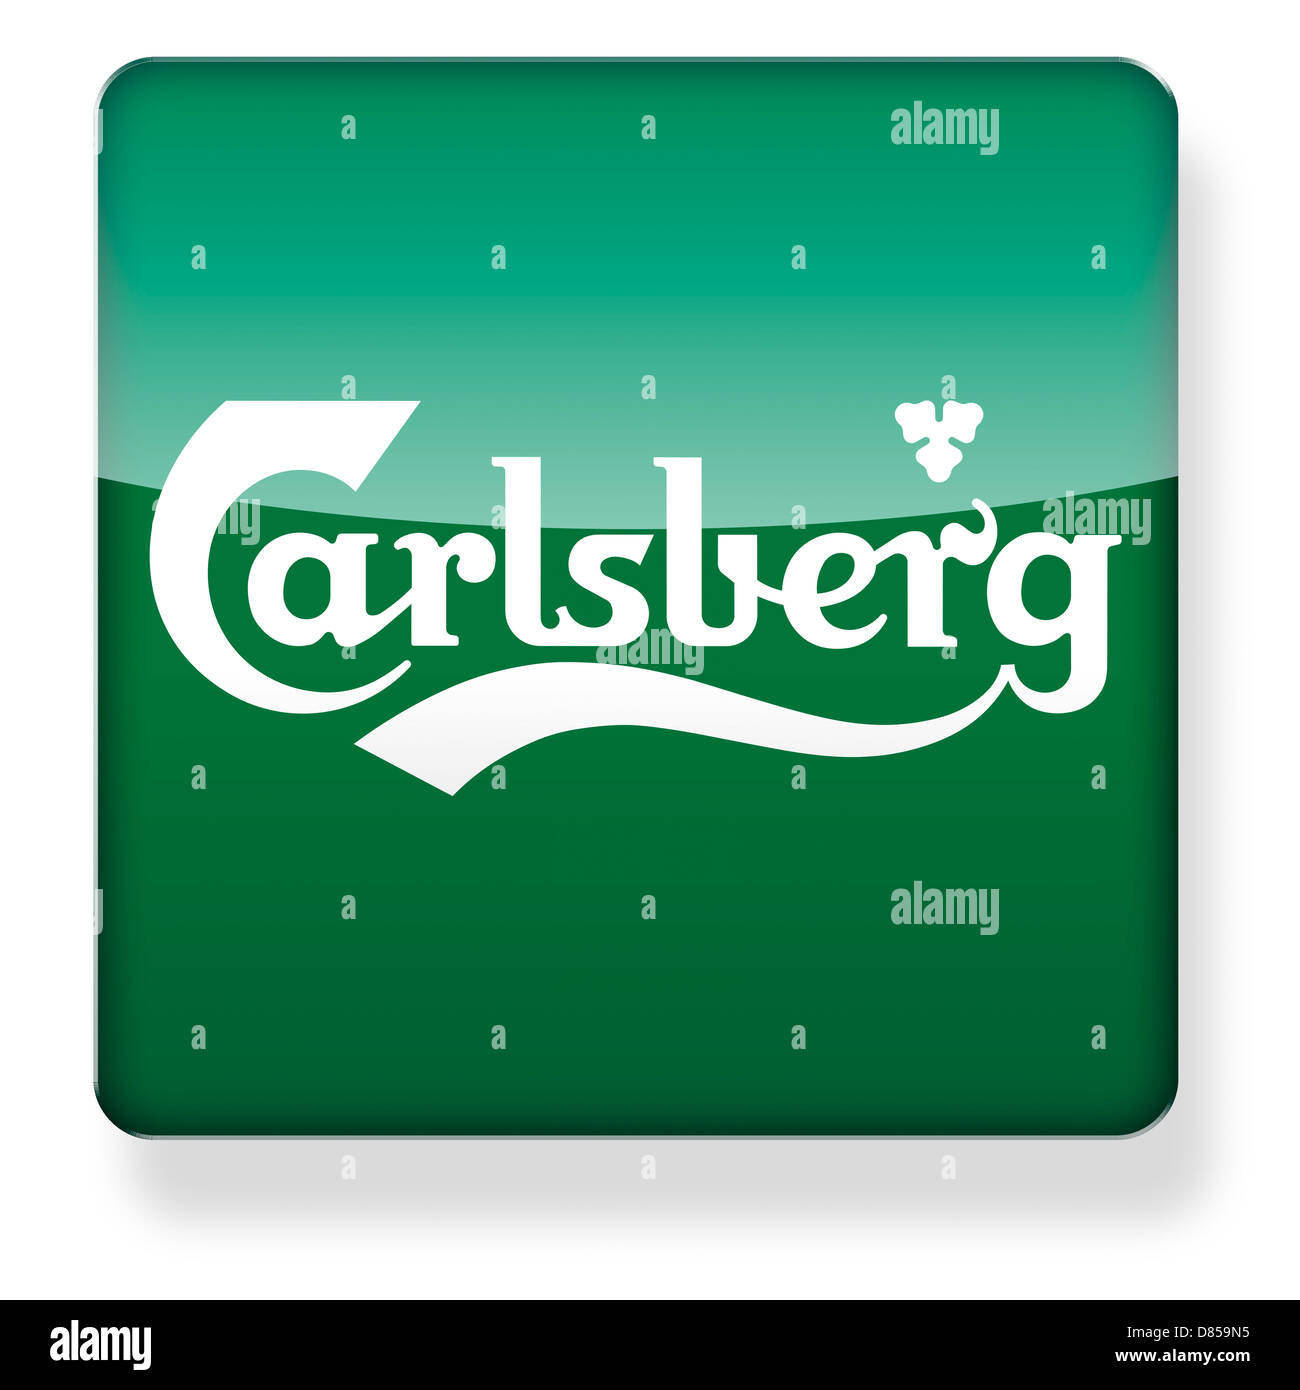 Carlsberg logo as an app icon. Clipping path included. - Stock Image